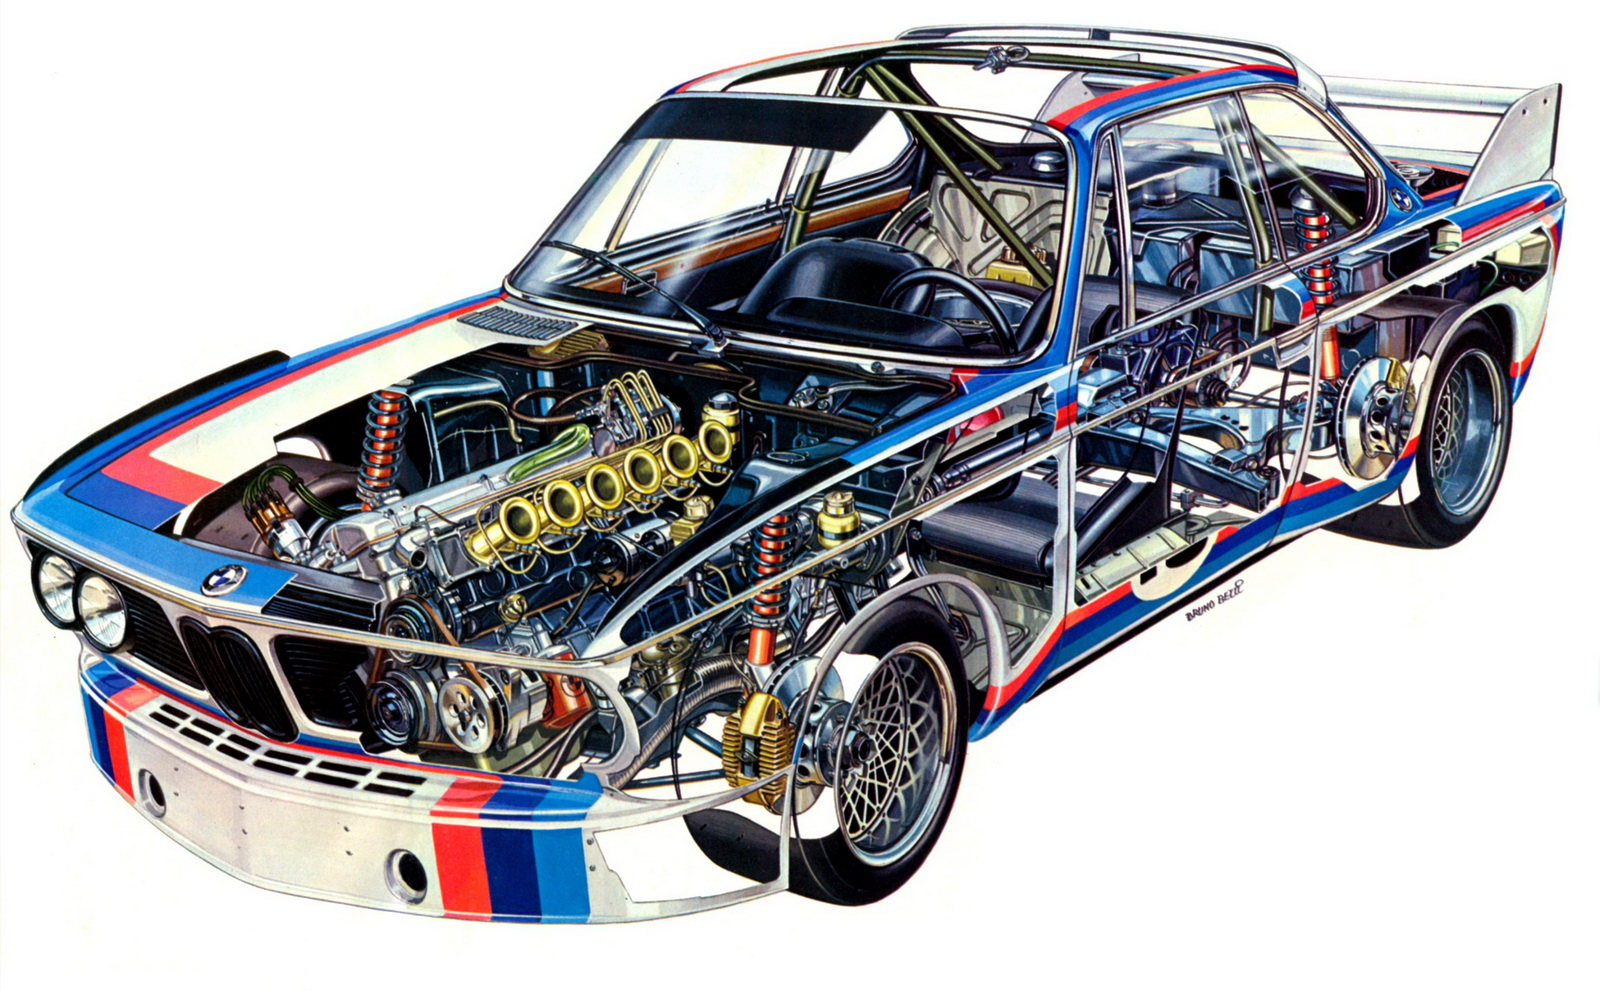 bmw e9 csl 3 0 group 2 1973 racing cars. Black Bedroom Furniture Sets. Home Design Ideas